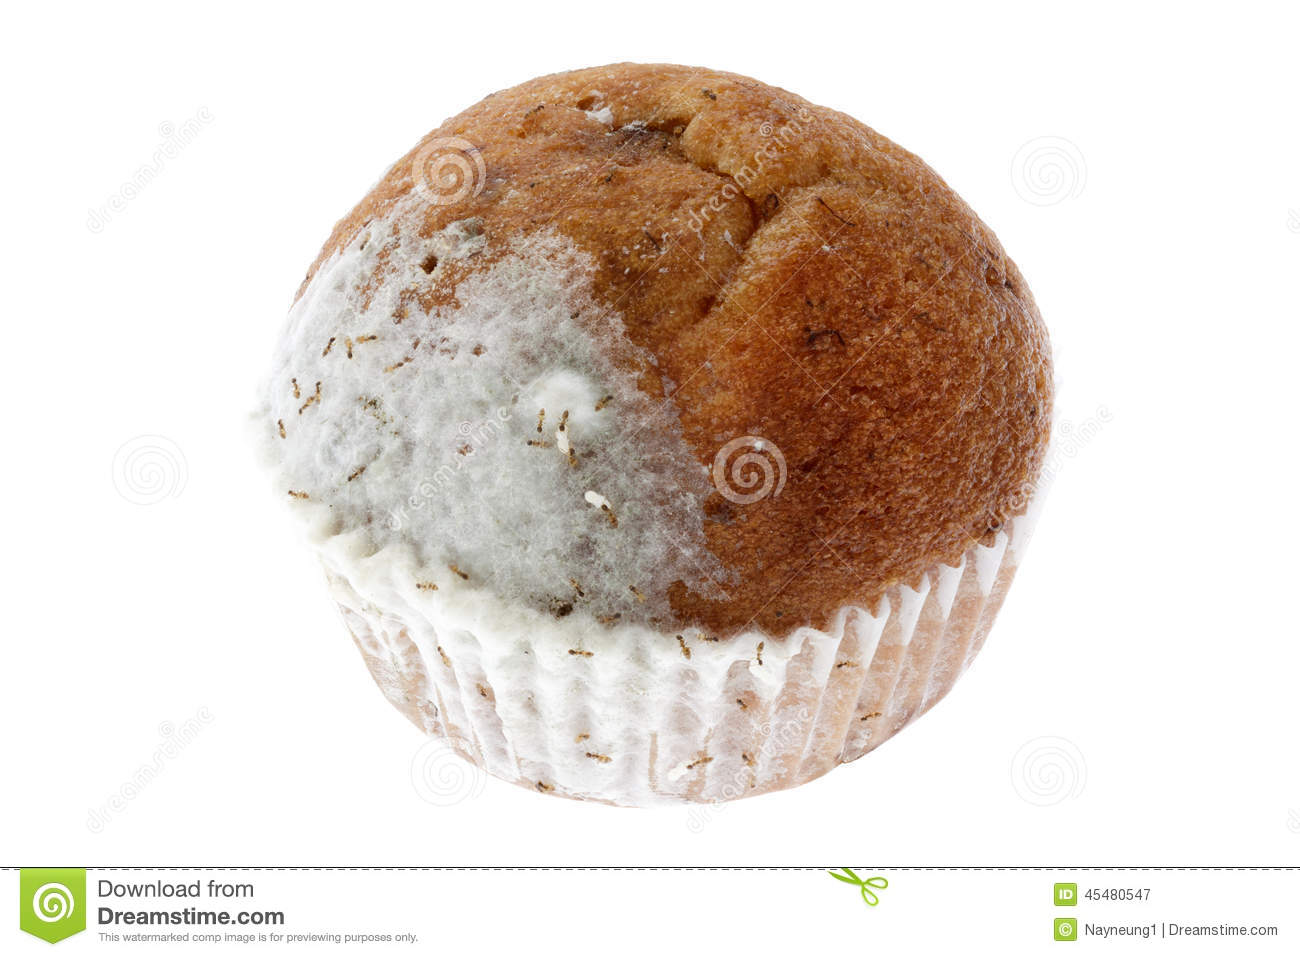 Mouldy Banana Muffin Cake With Swarming Ants Isolated On